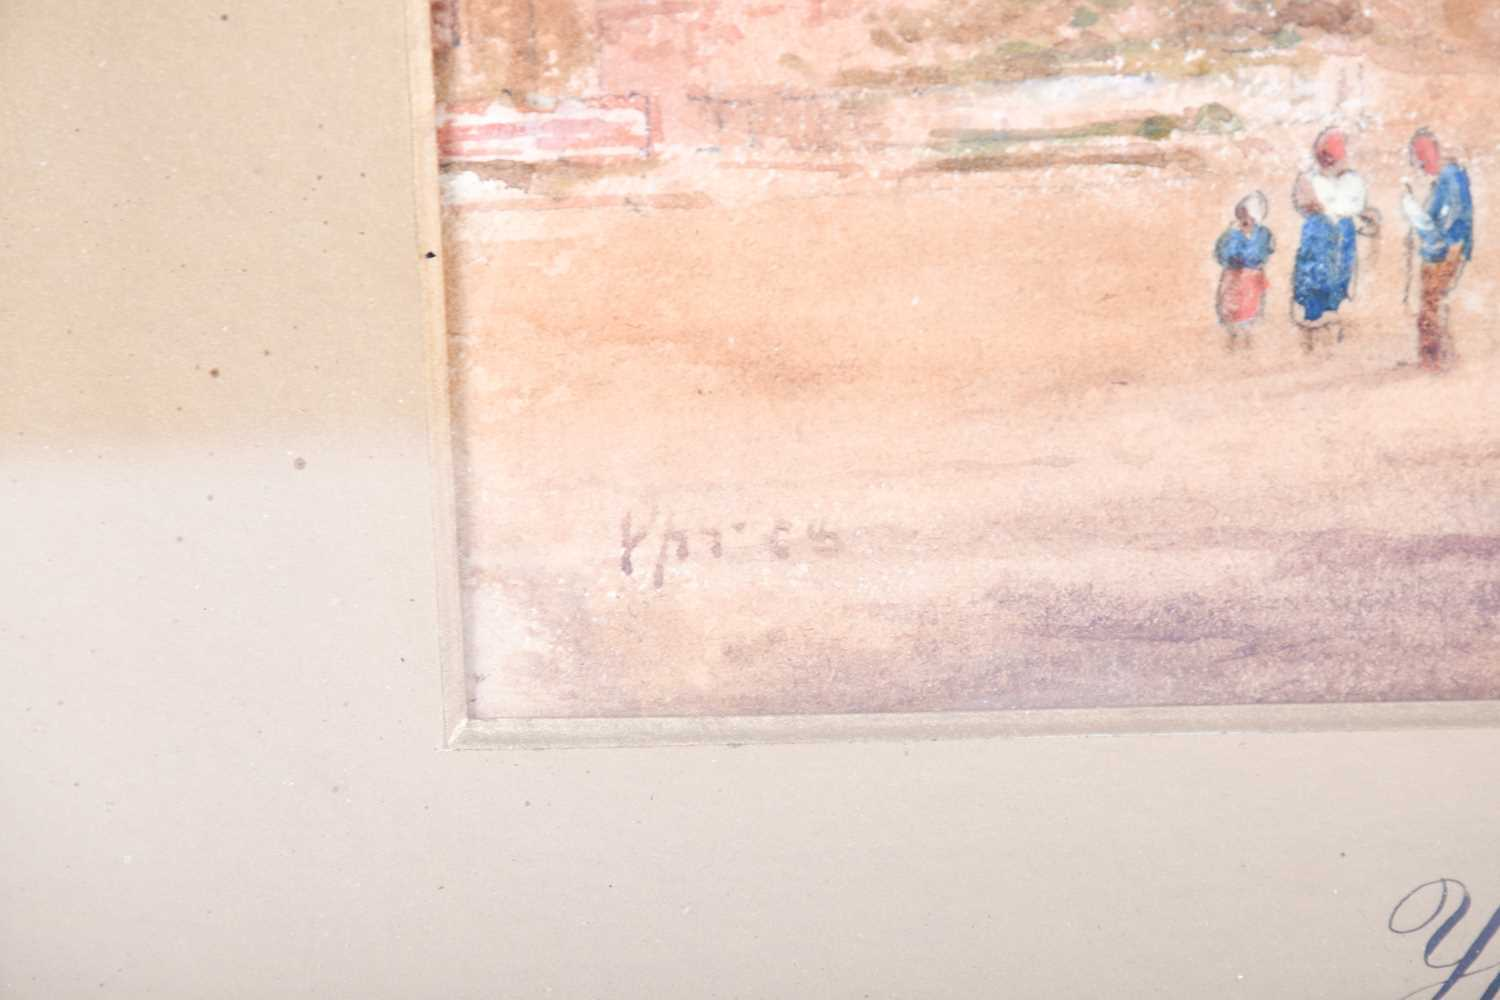 Edward Nevil (British, fl: 1880 - 1900) 'Ypres' & 'Malines', signed, watercolour, a pair, 27 x 19cm - Image 4 of 7